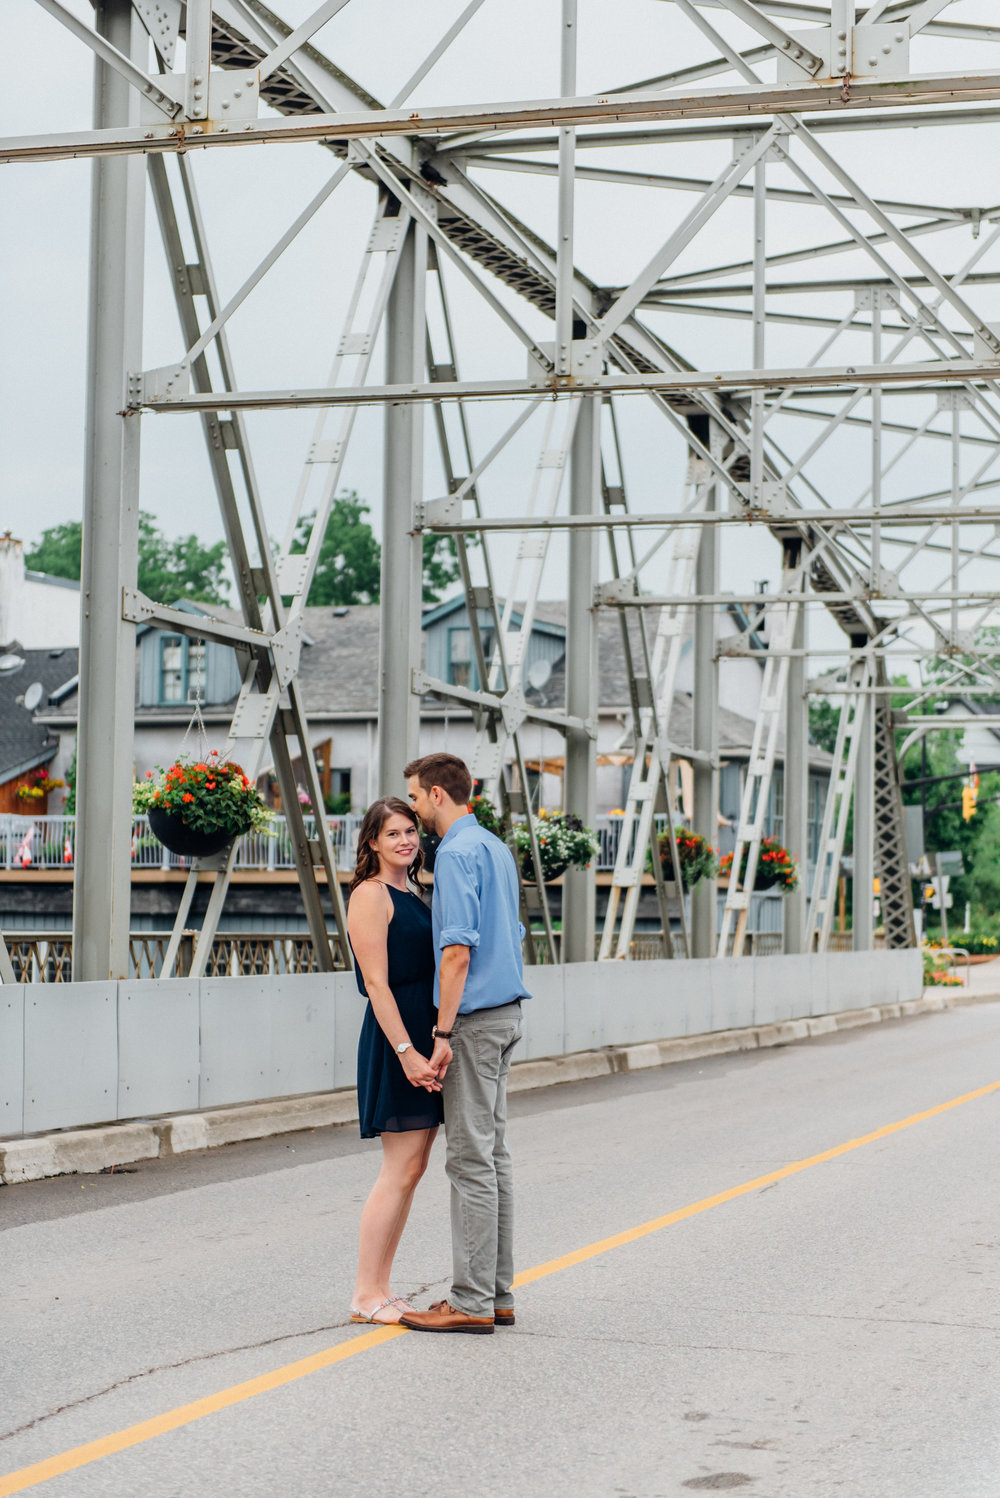 Gill + Chris Engagement Shoot BLOG-59.jpg